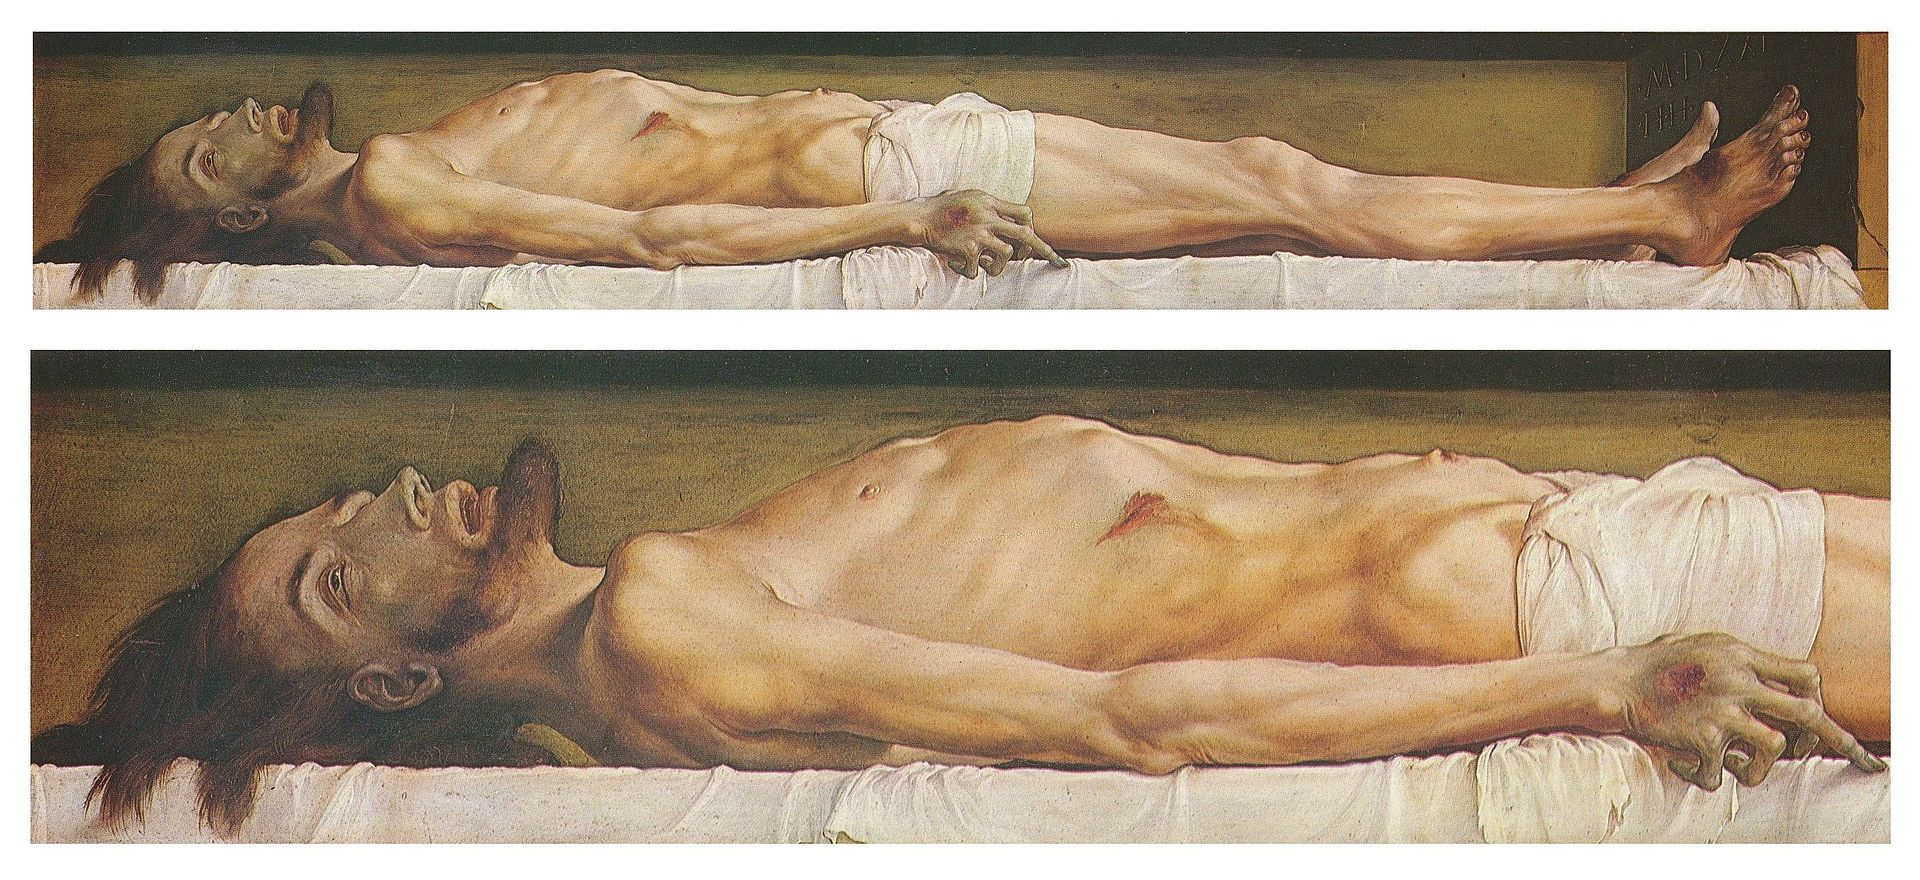 The_Body_of_the_Dead_Christ_in_the_Tomb,_and_a_detail,_by_Hans_Holbein_the_Younger.jpg